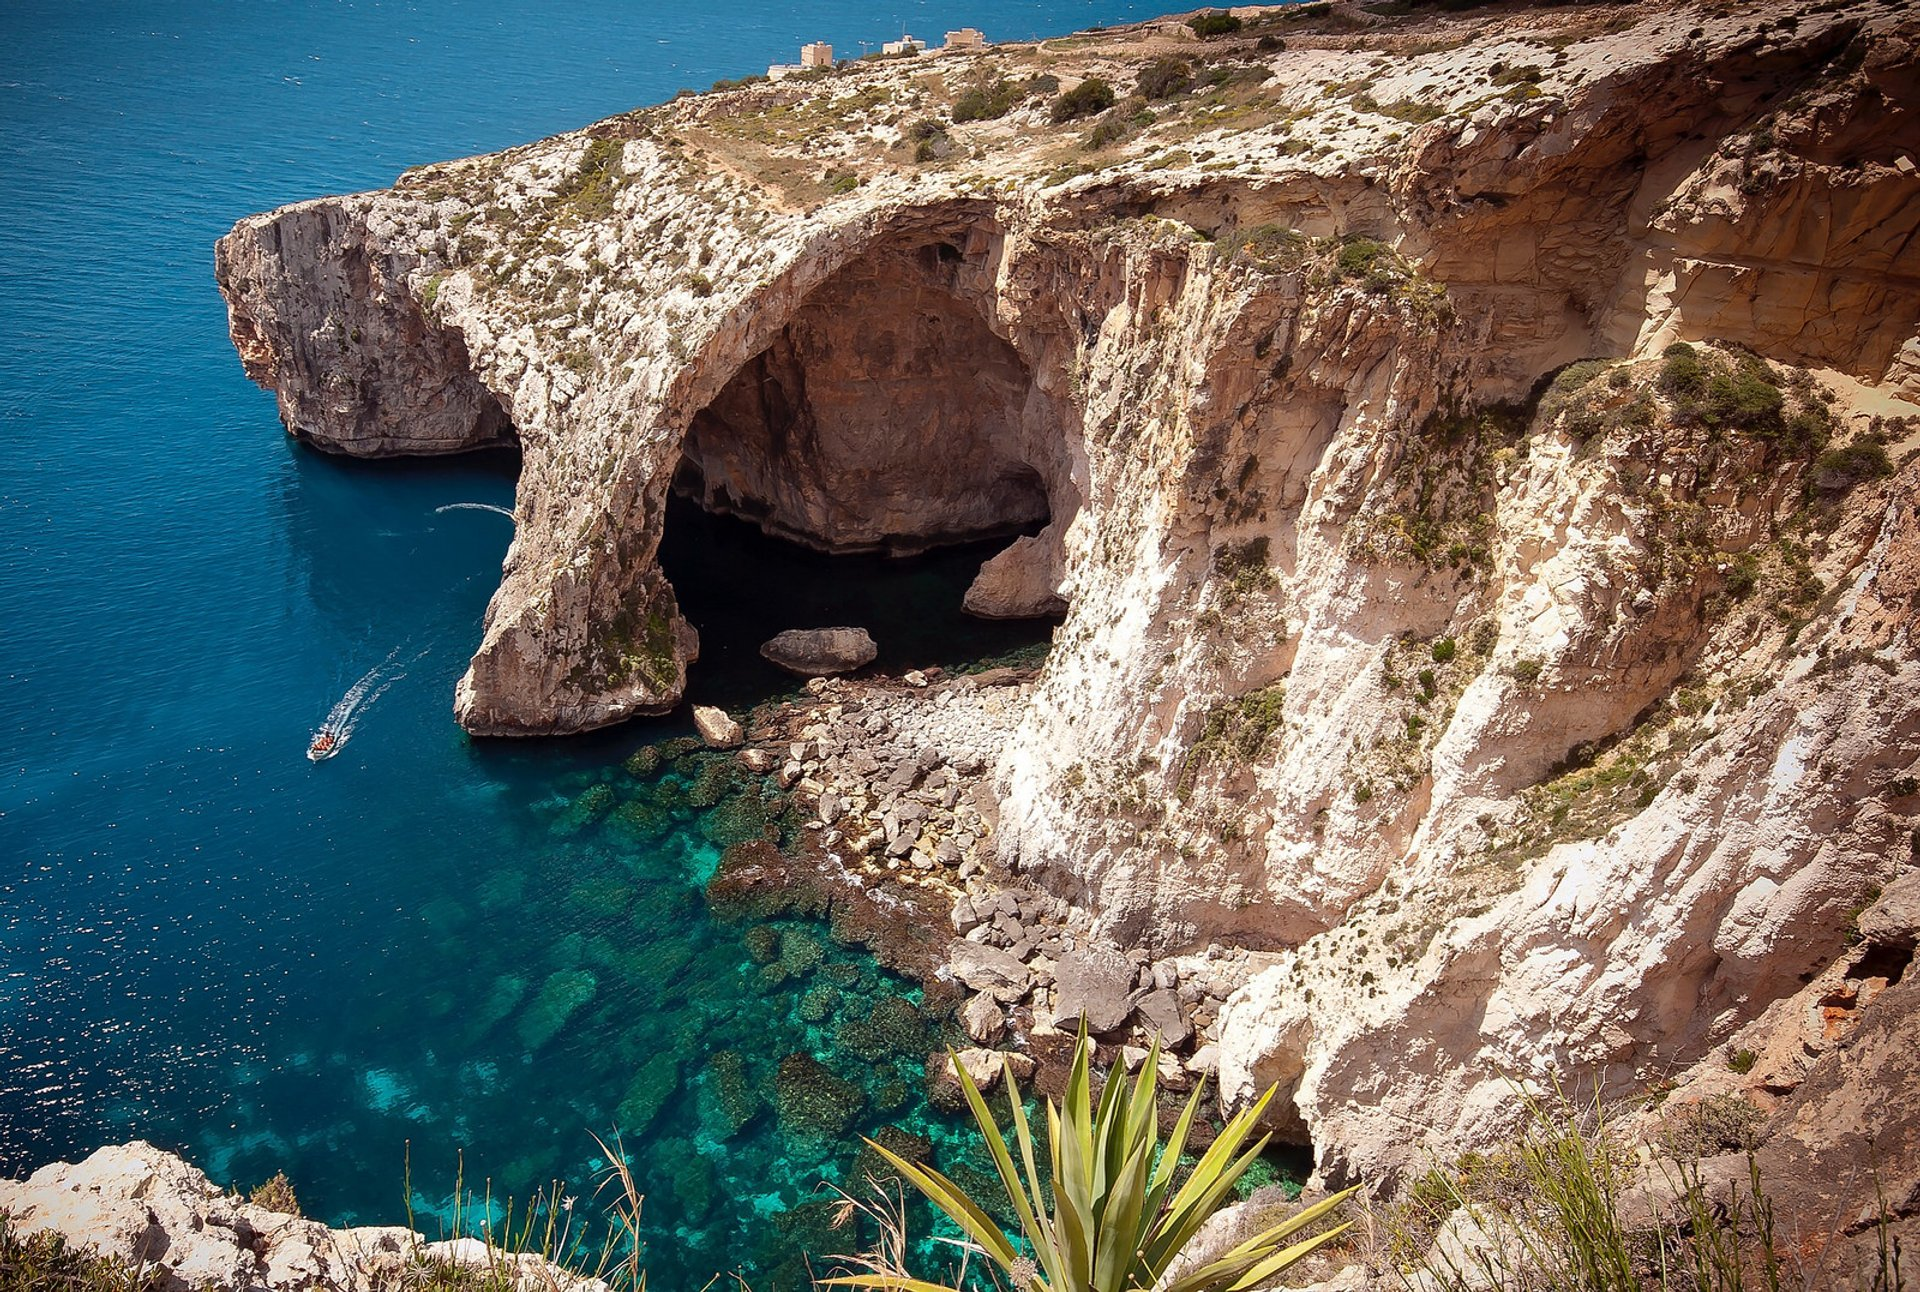 Blue Grotto Off-Season in Malta 2019 - Best Time